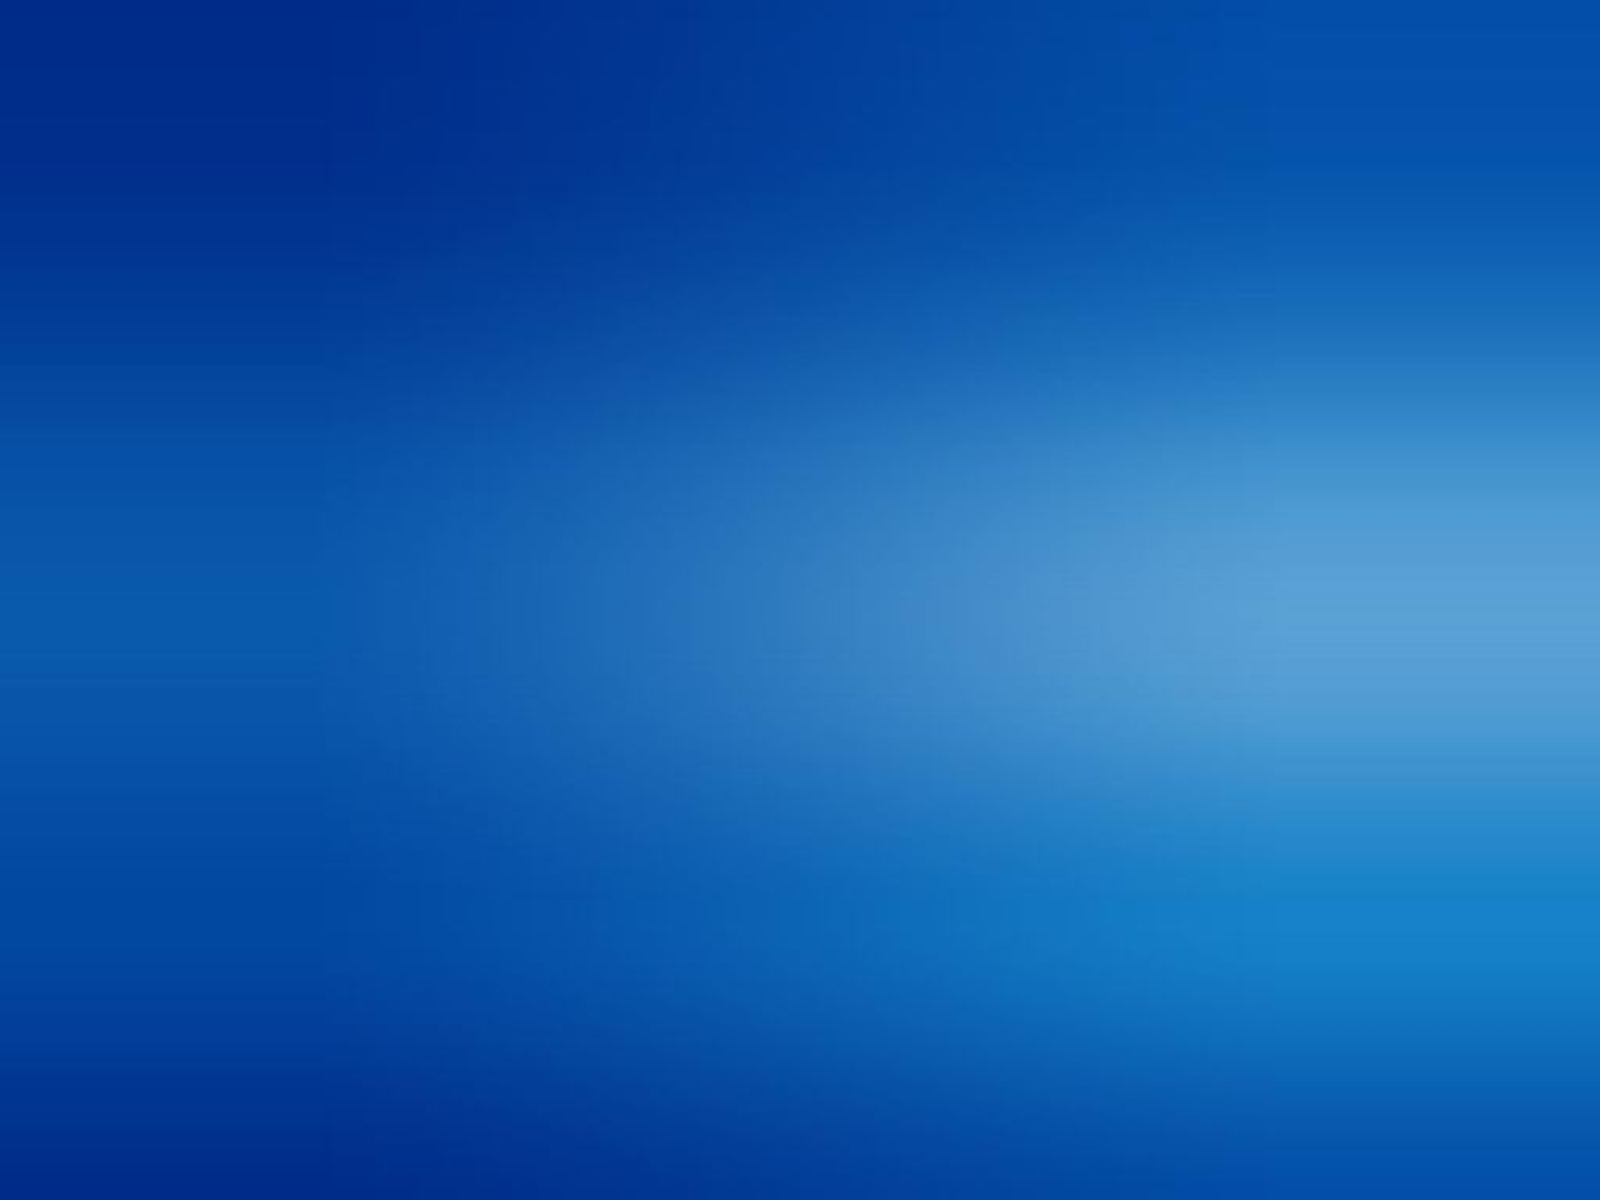 Plain Blue Wallpapers